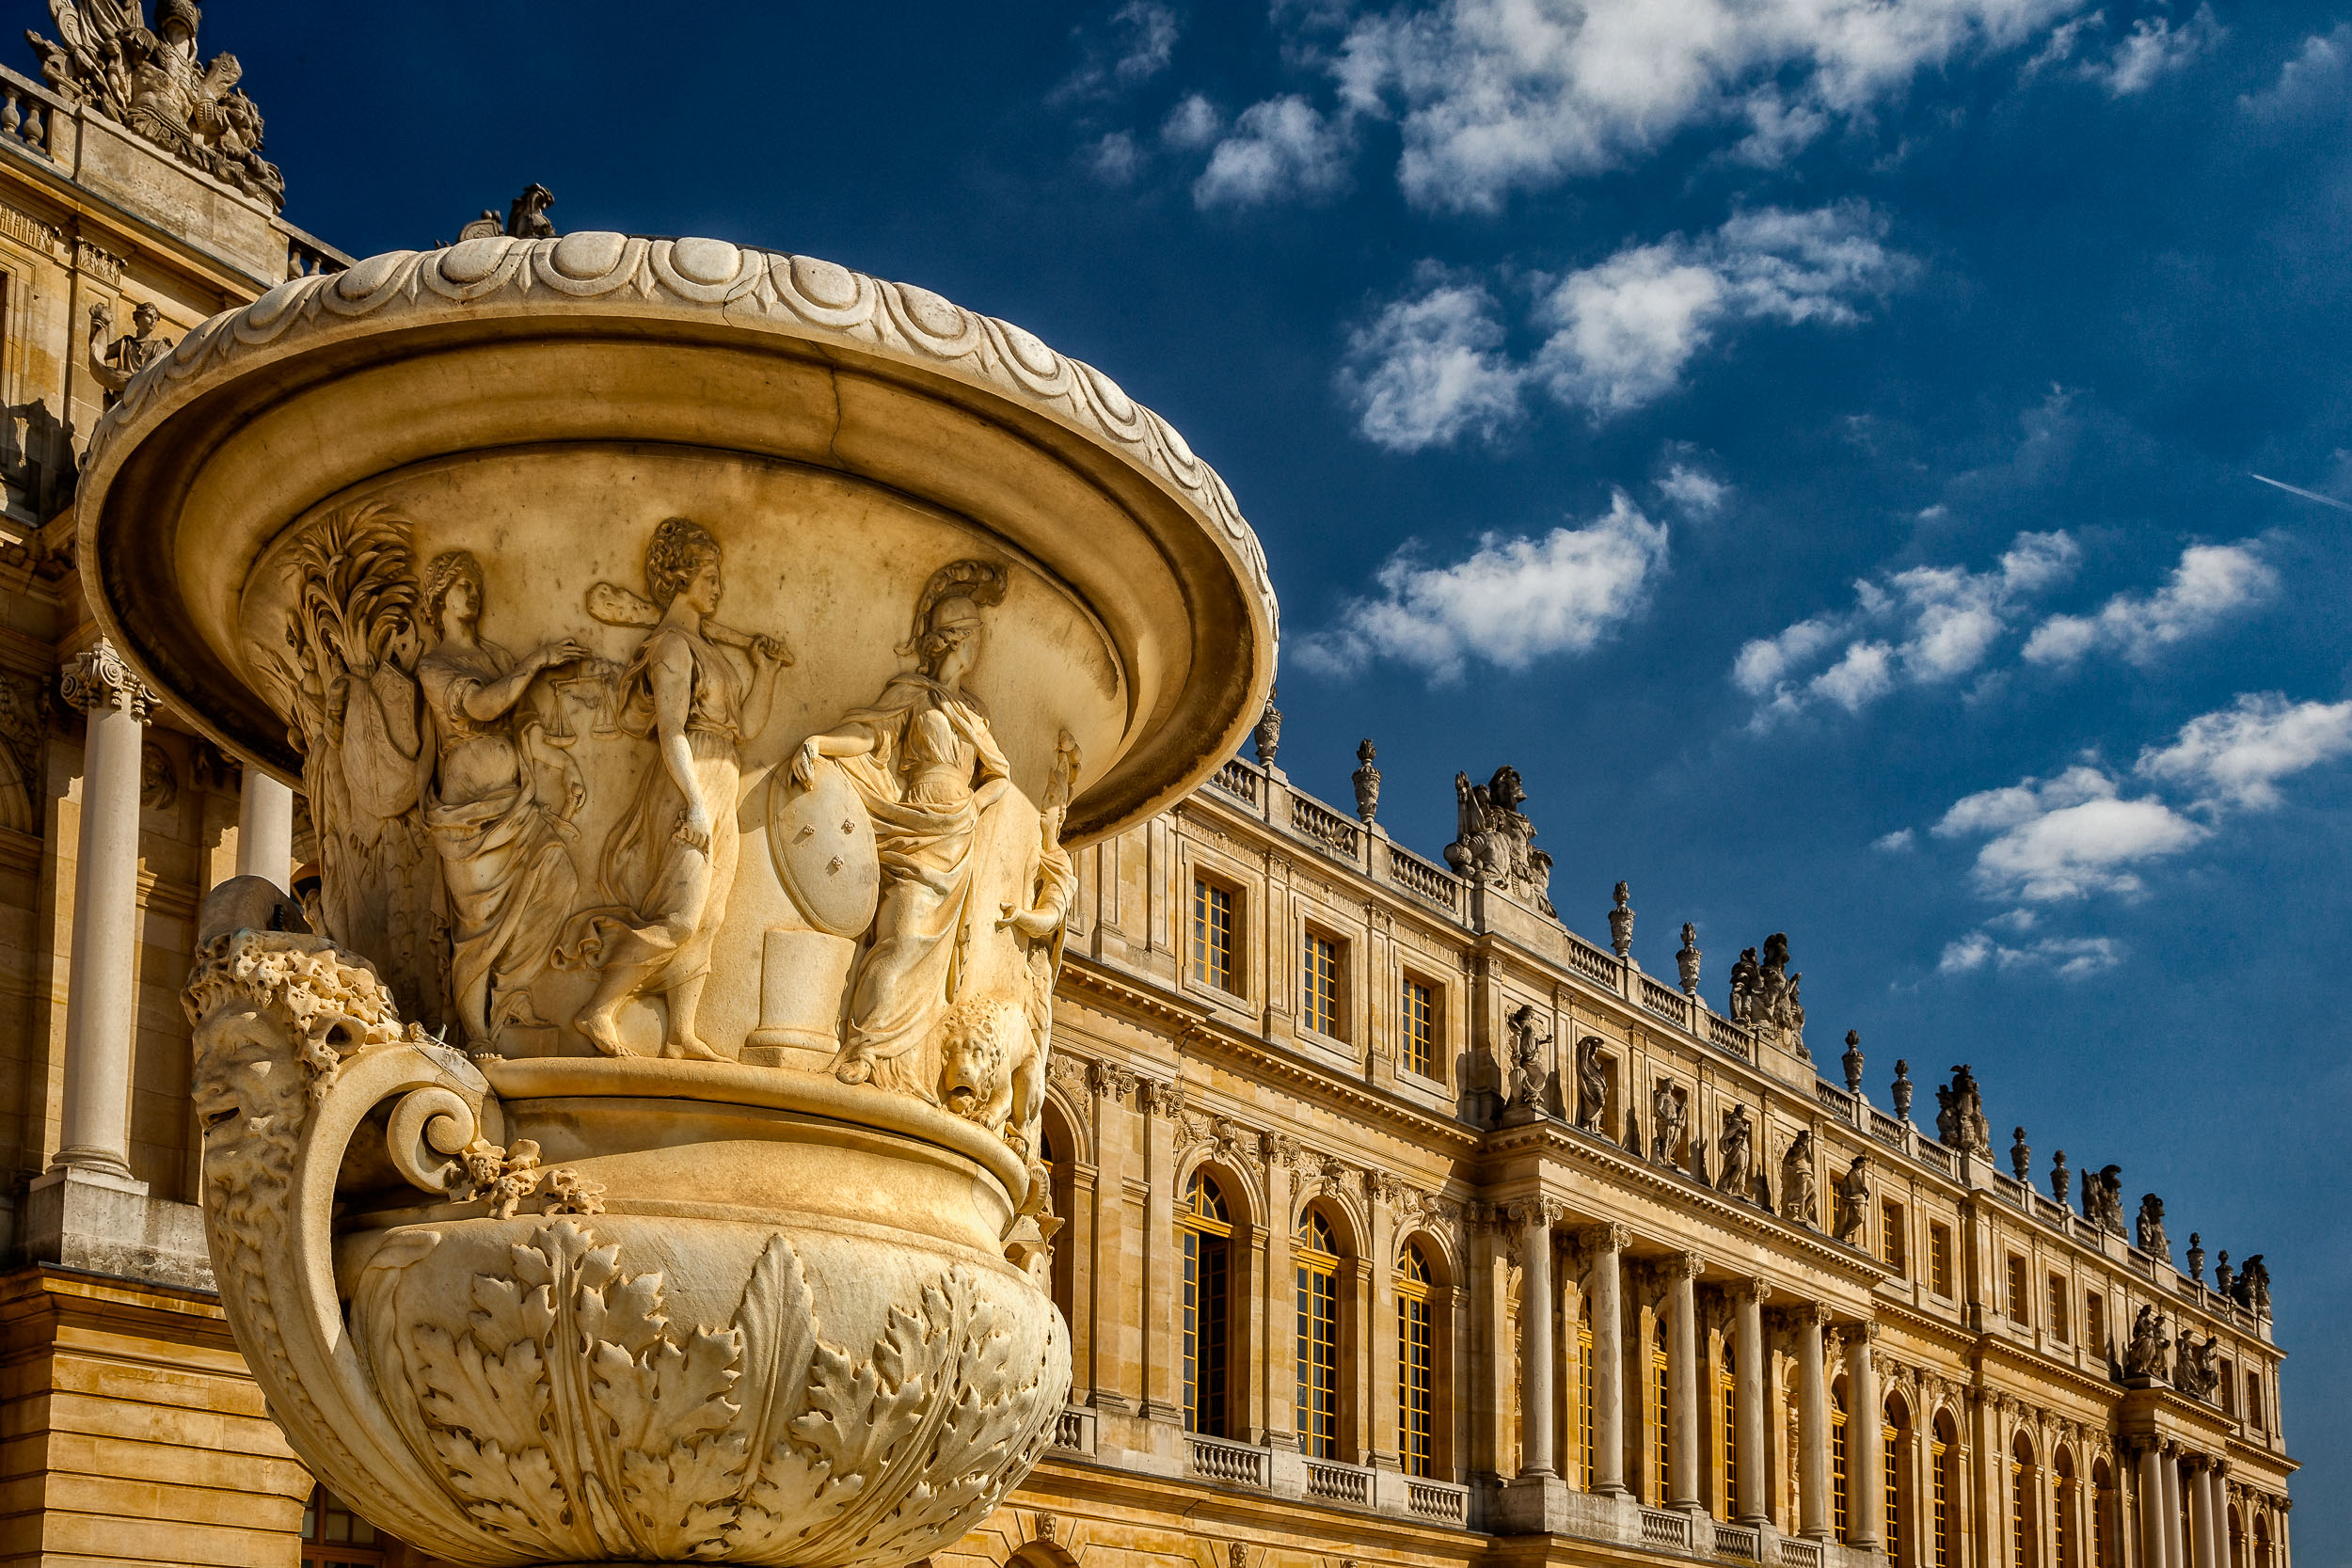 The    Palace of Versailles    near Paris, France photographed under    warm, late afternoon light   . A highly    decorative vase    stands out in front of the    palace's magnificent facade   .